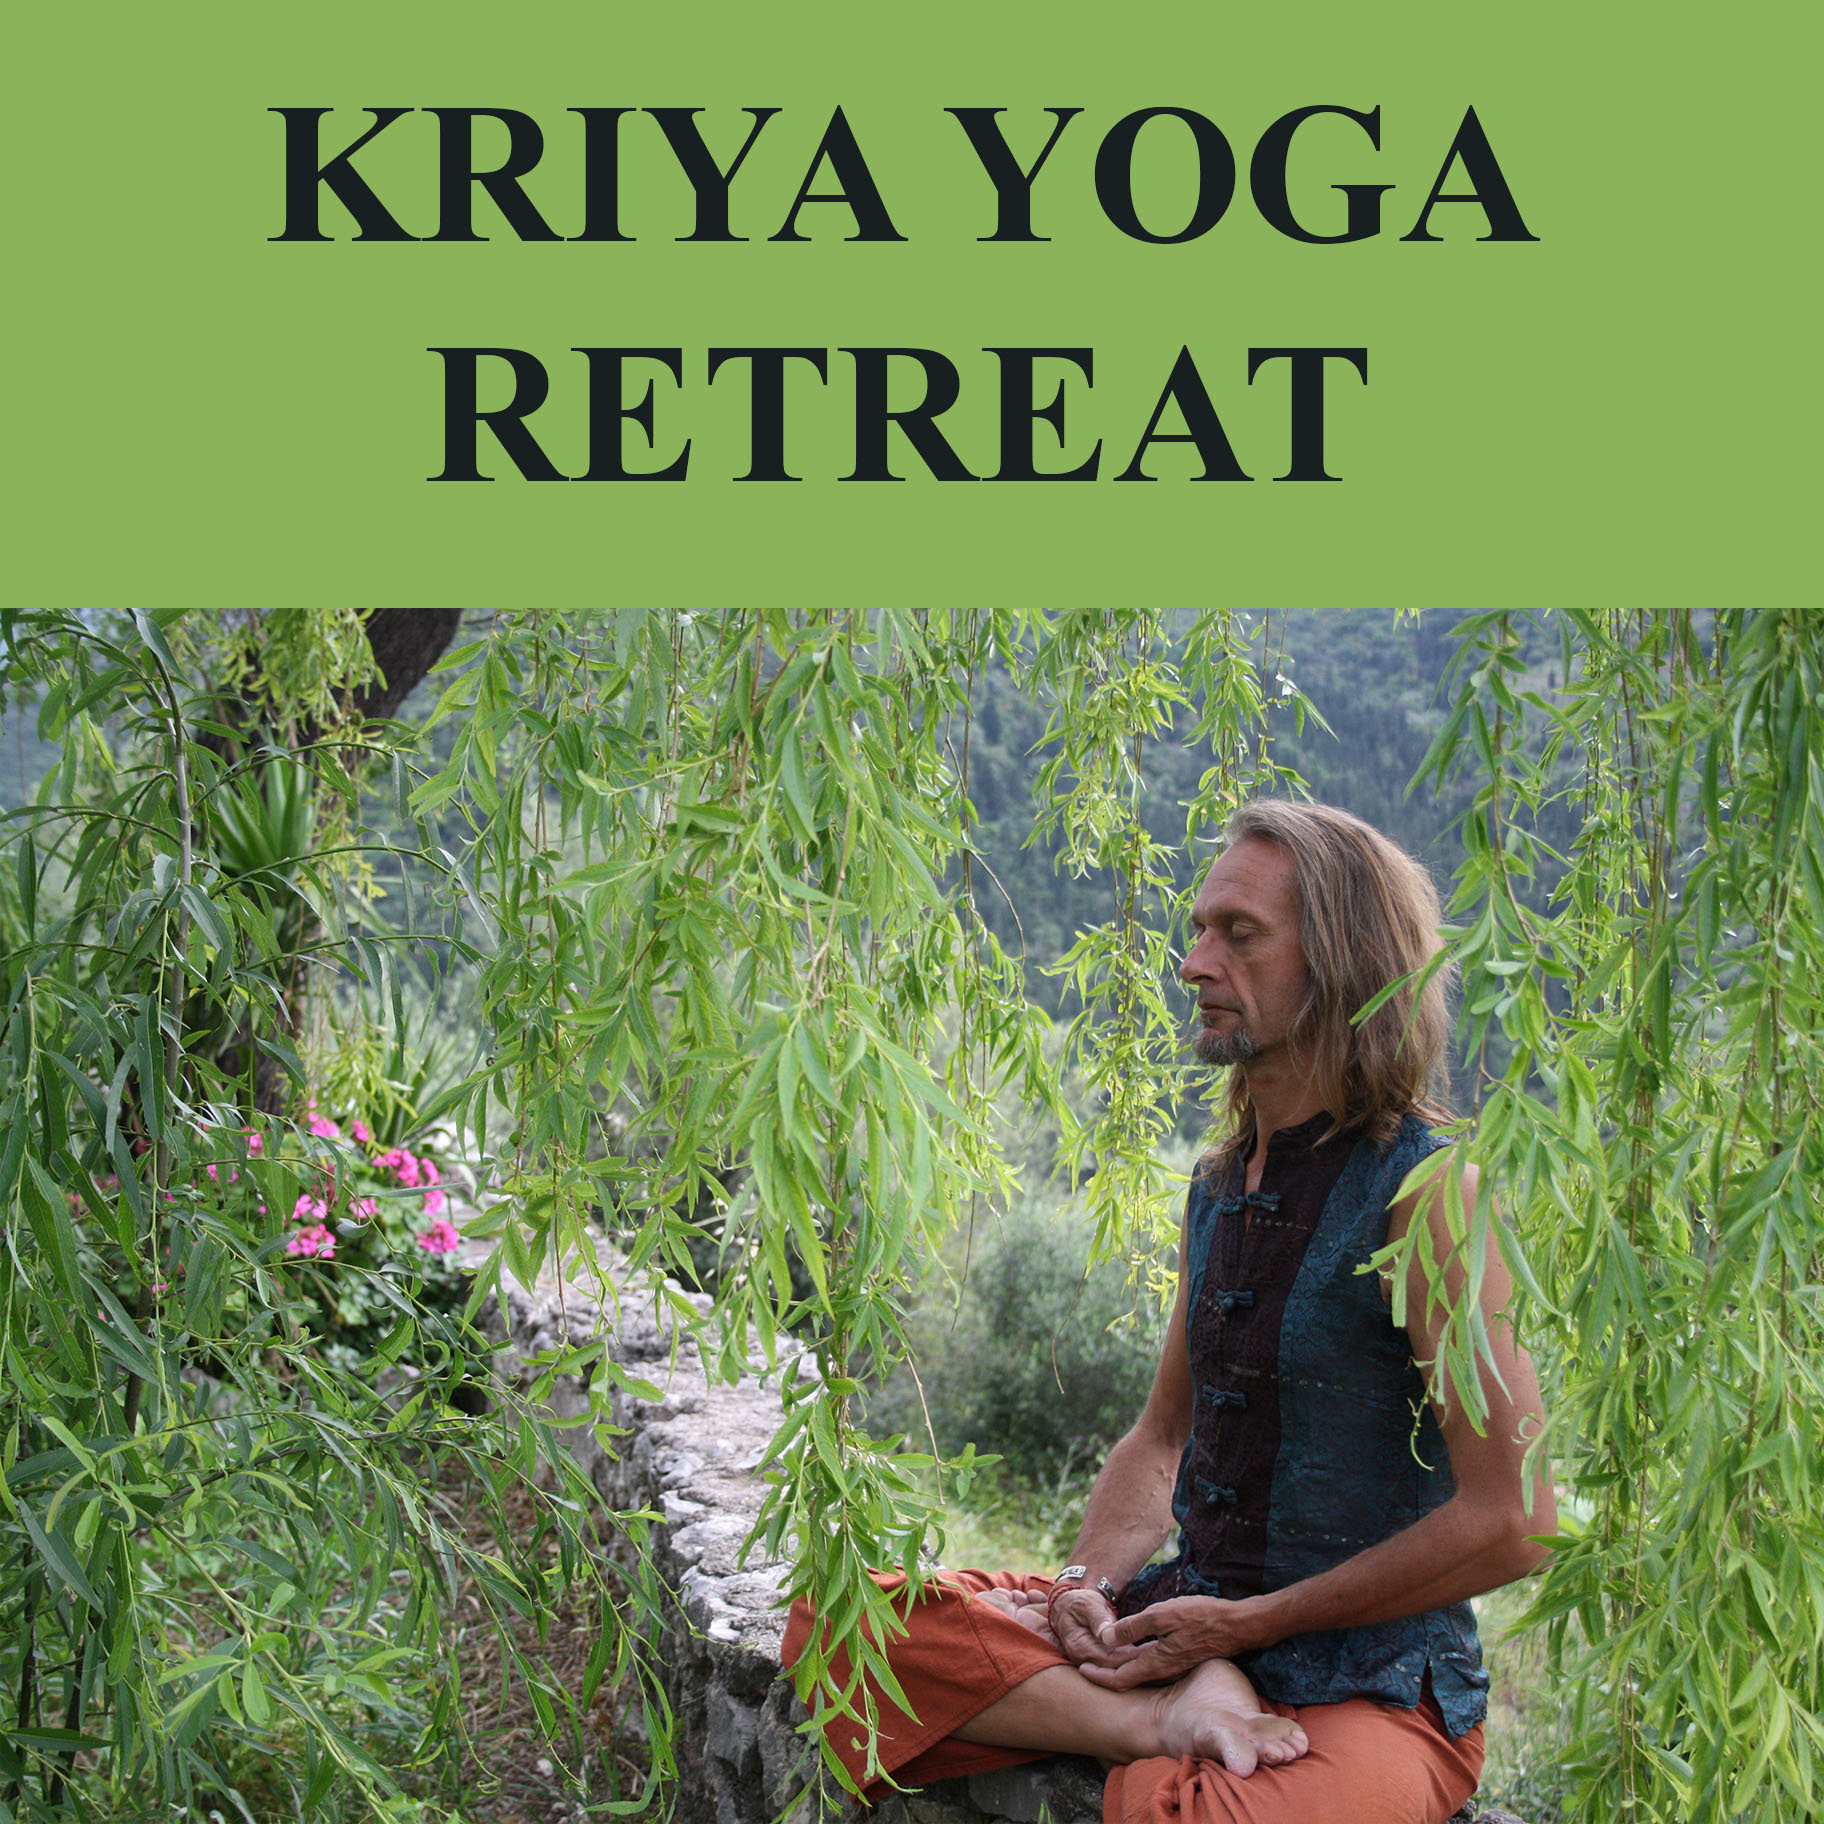 Kriya Yoga Retreat